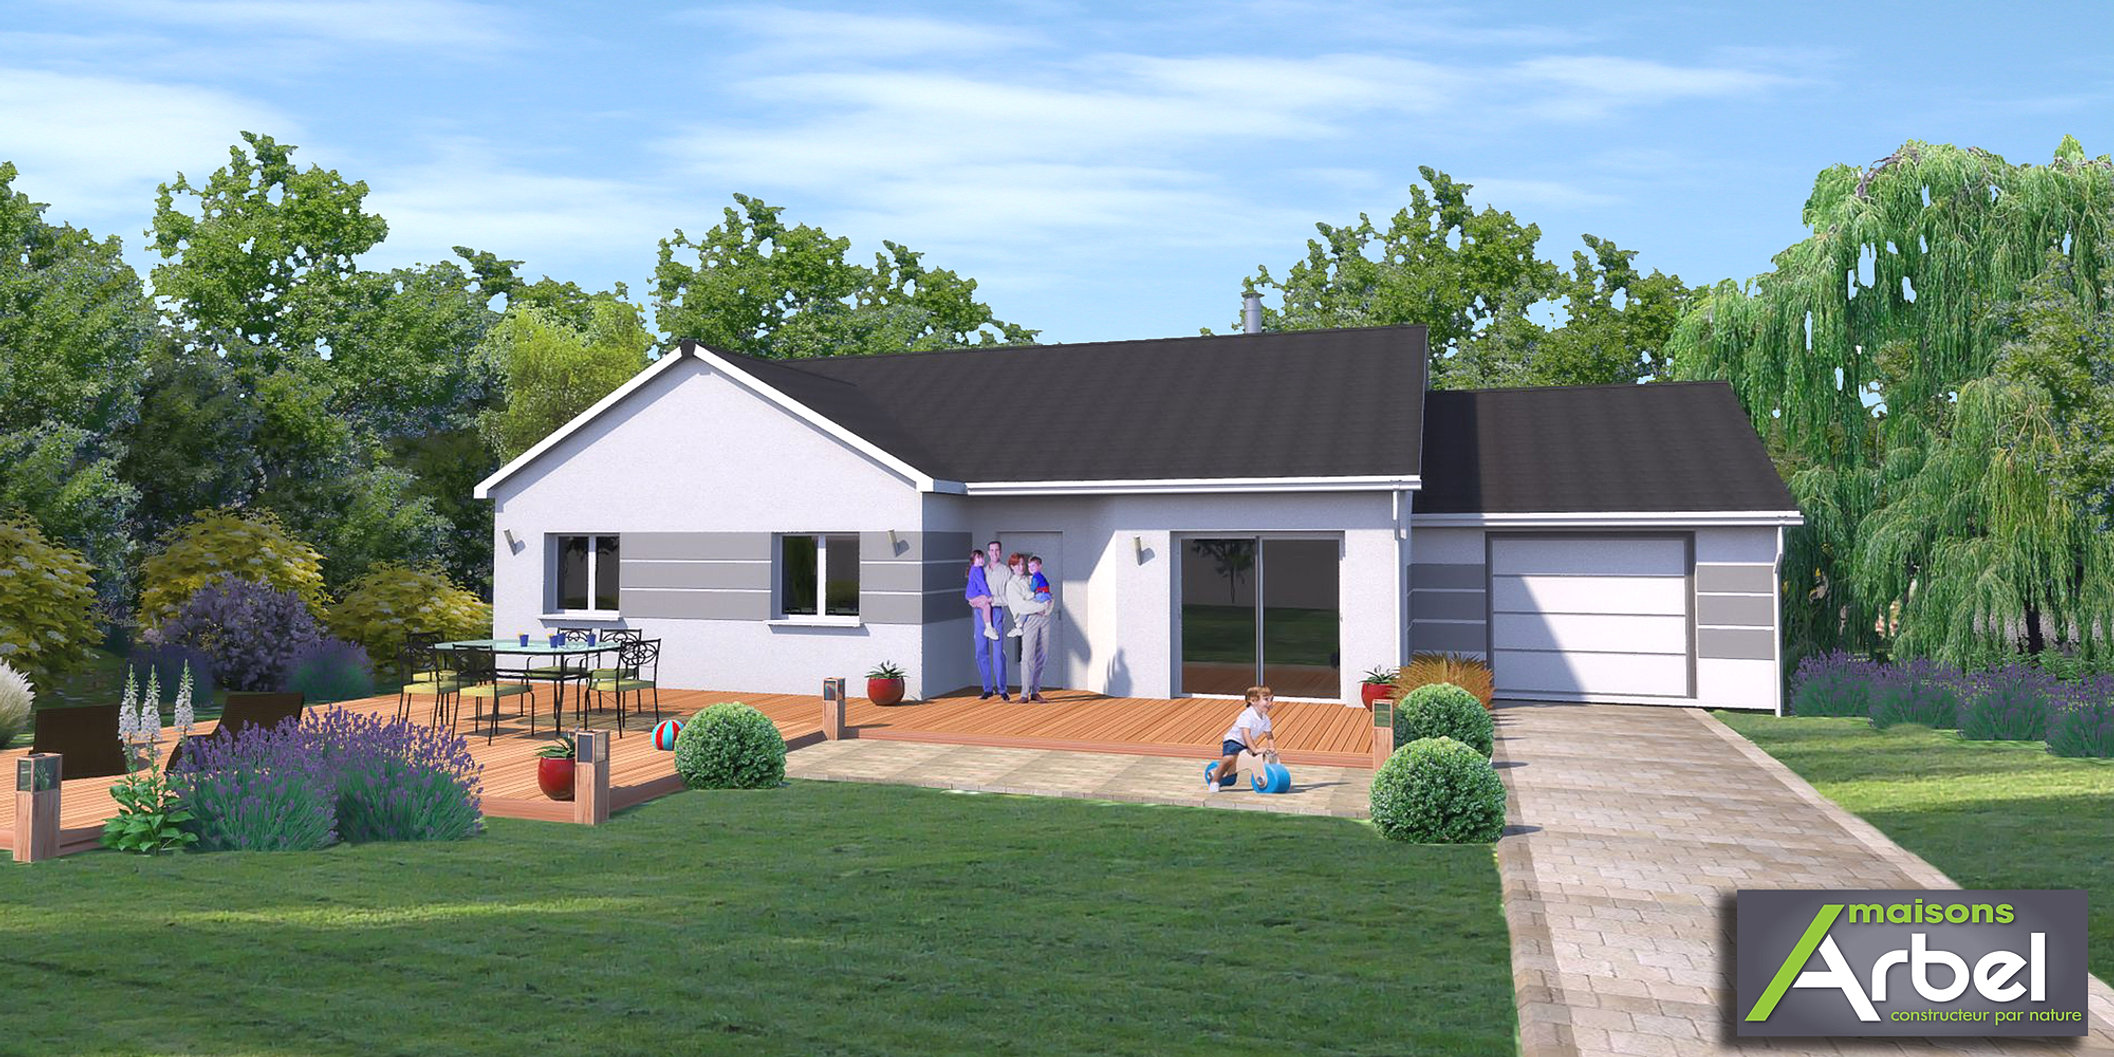 Maison moderne carre for Maison en 3d